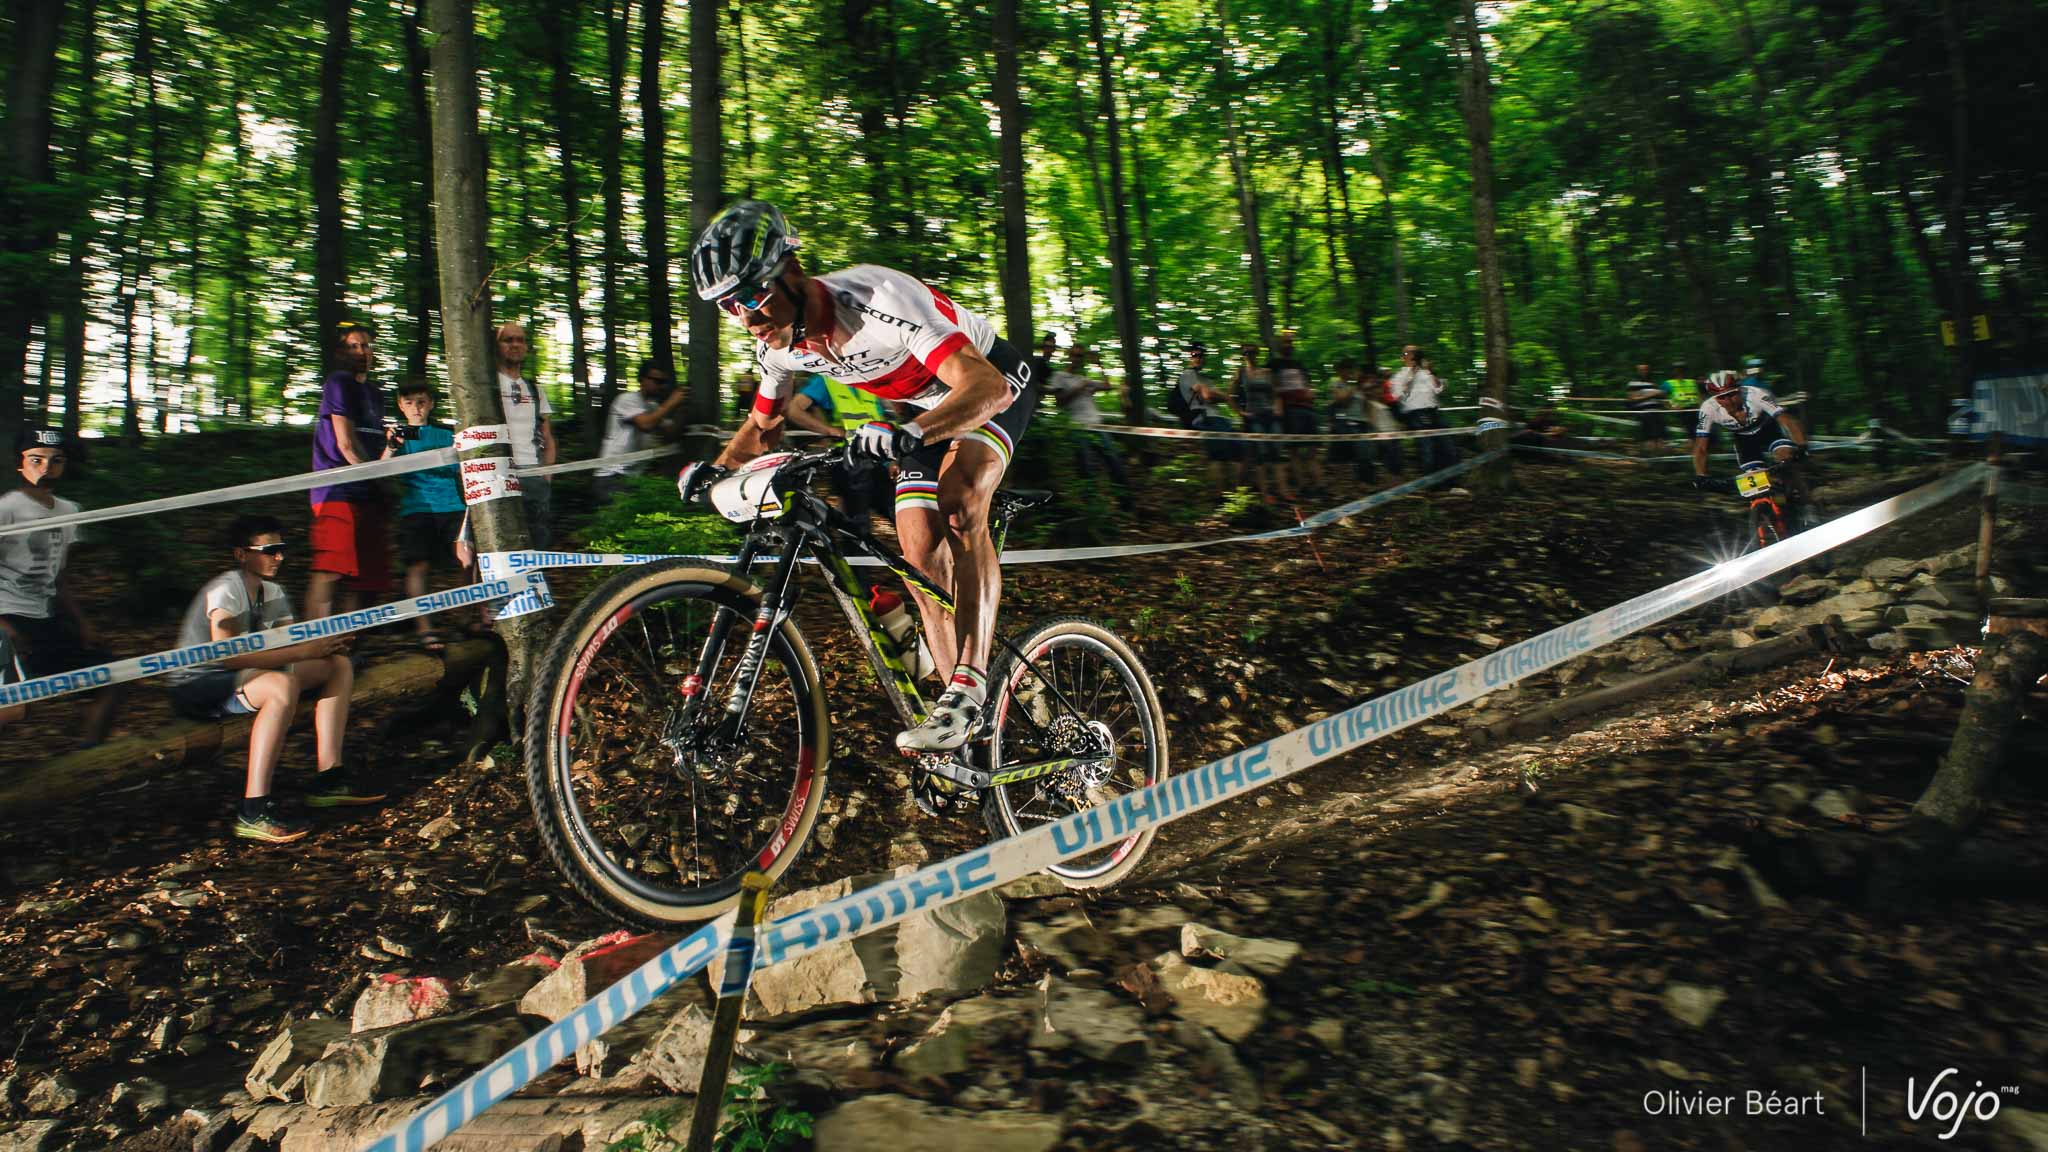 Nino_Schurter_Interview_Scott_Spark_Scale_Albstadt_Copyright_OBeart_VojoMag-4